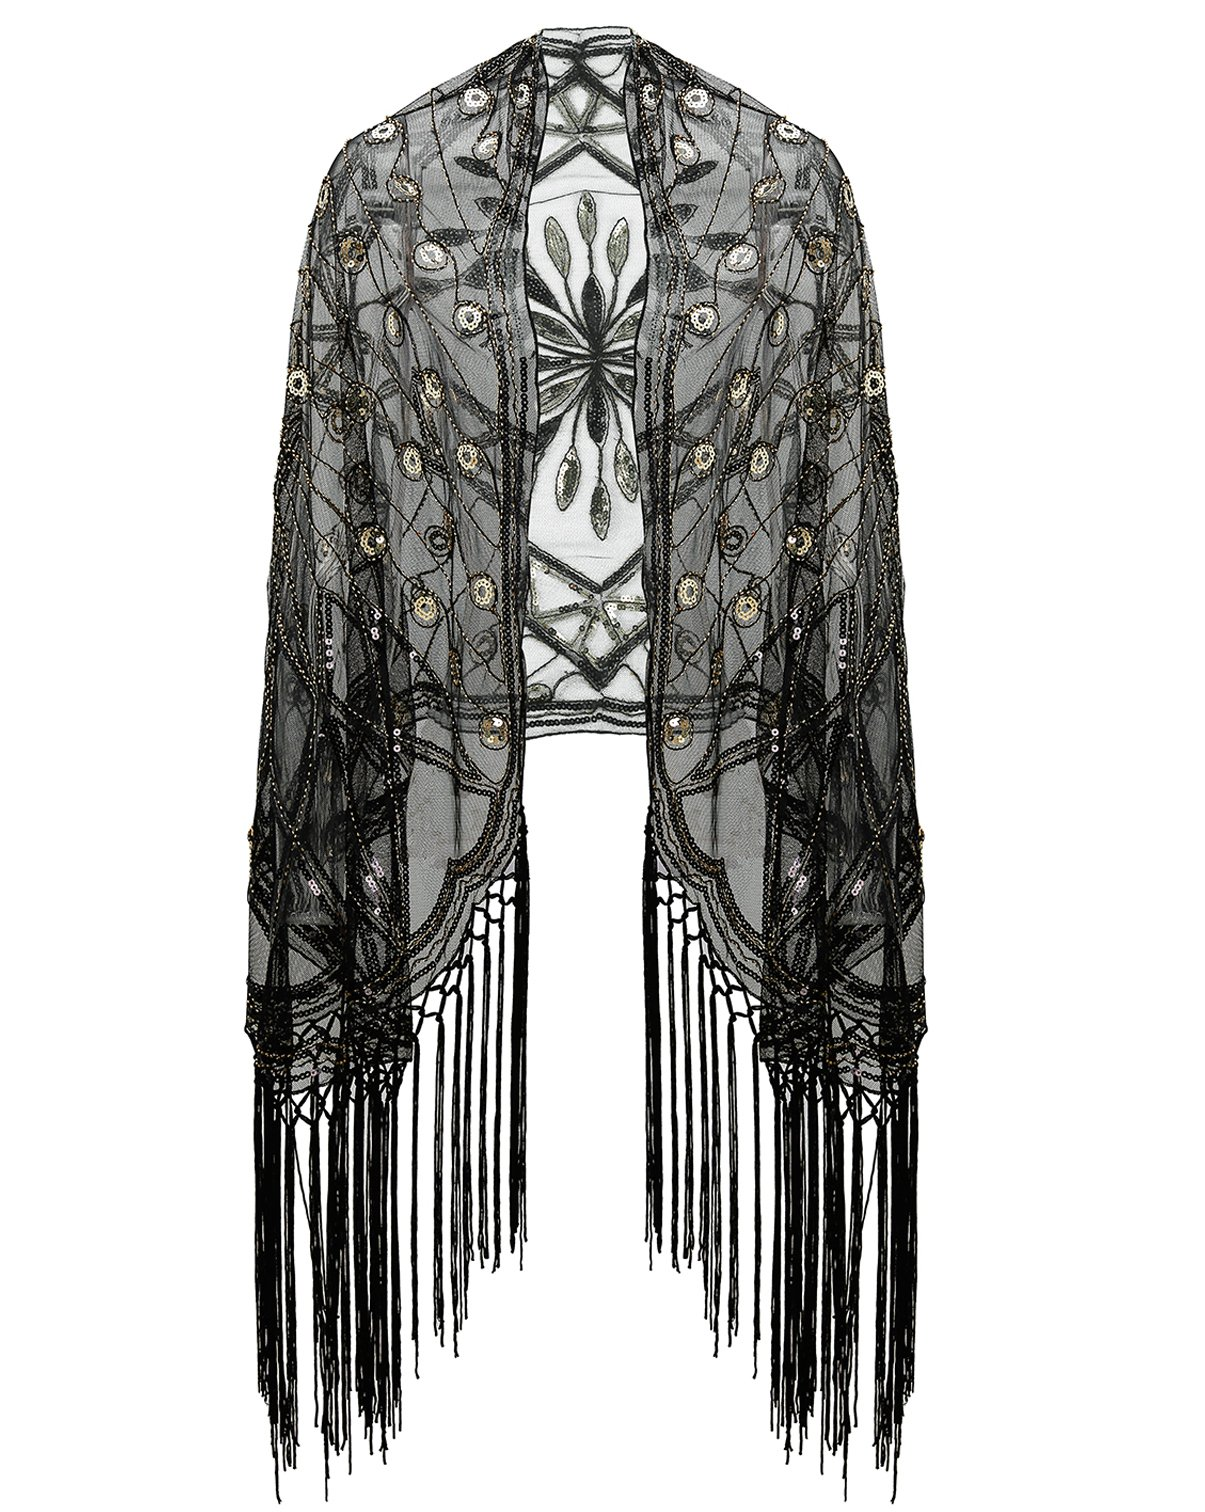 Metme Women's 1920s Scarf Wraps Sequin Deco Fringed Wedding Cape Evening Shawl Vintage Prom